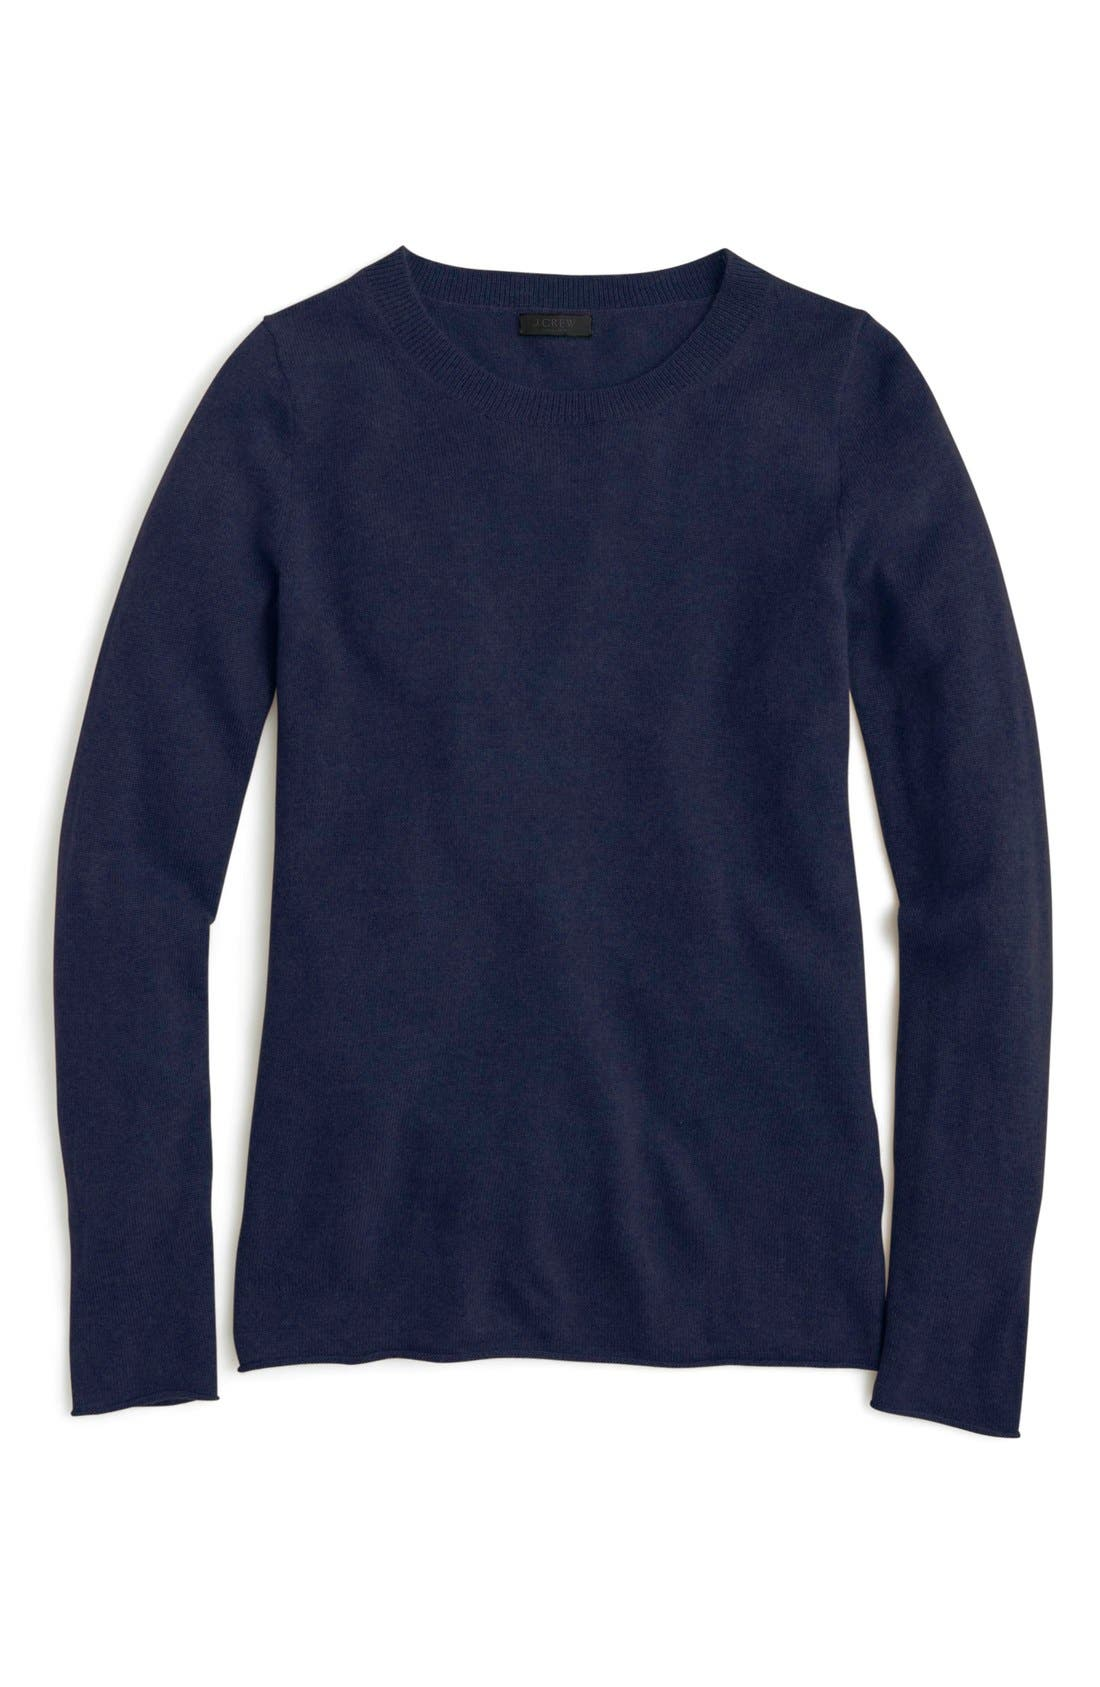 Alternate Image 1 Selected - J.Crew Long Sleeve Italian Cashmere Sweater